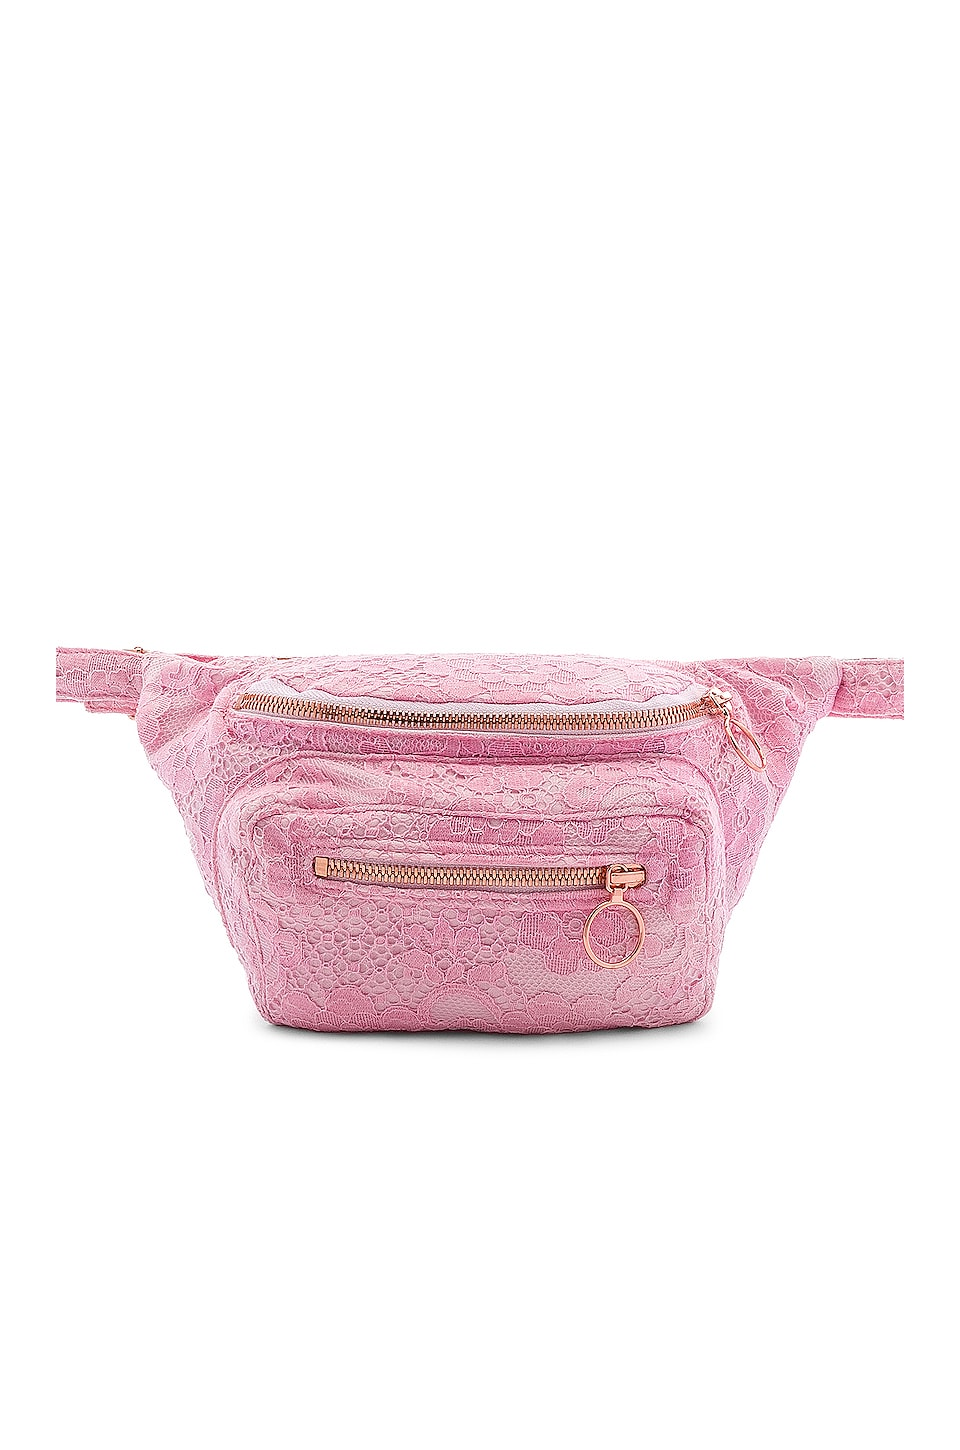 For Love & Lemons Lace Fanny Pack in Pink